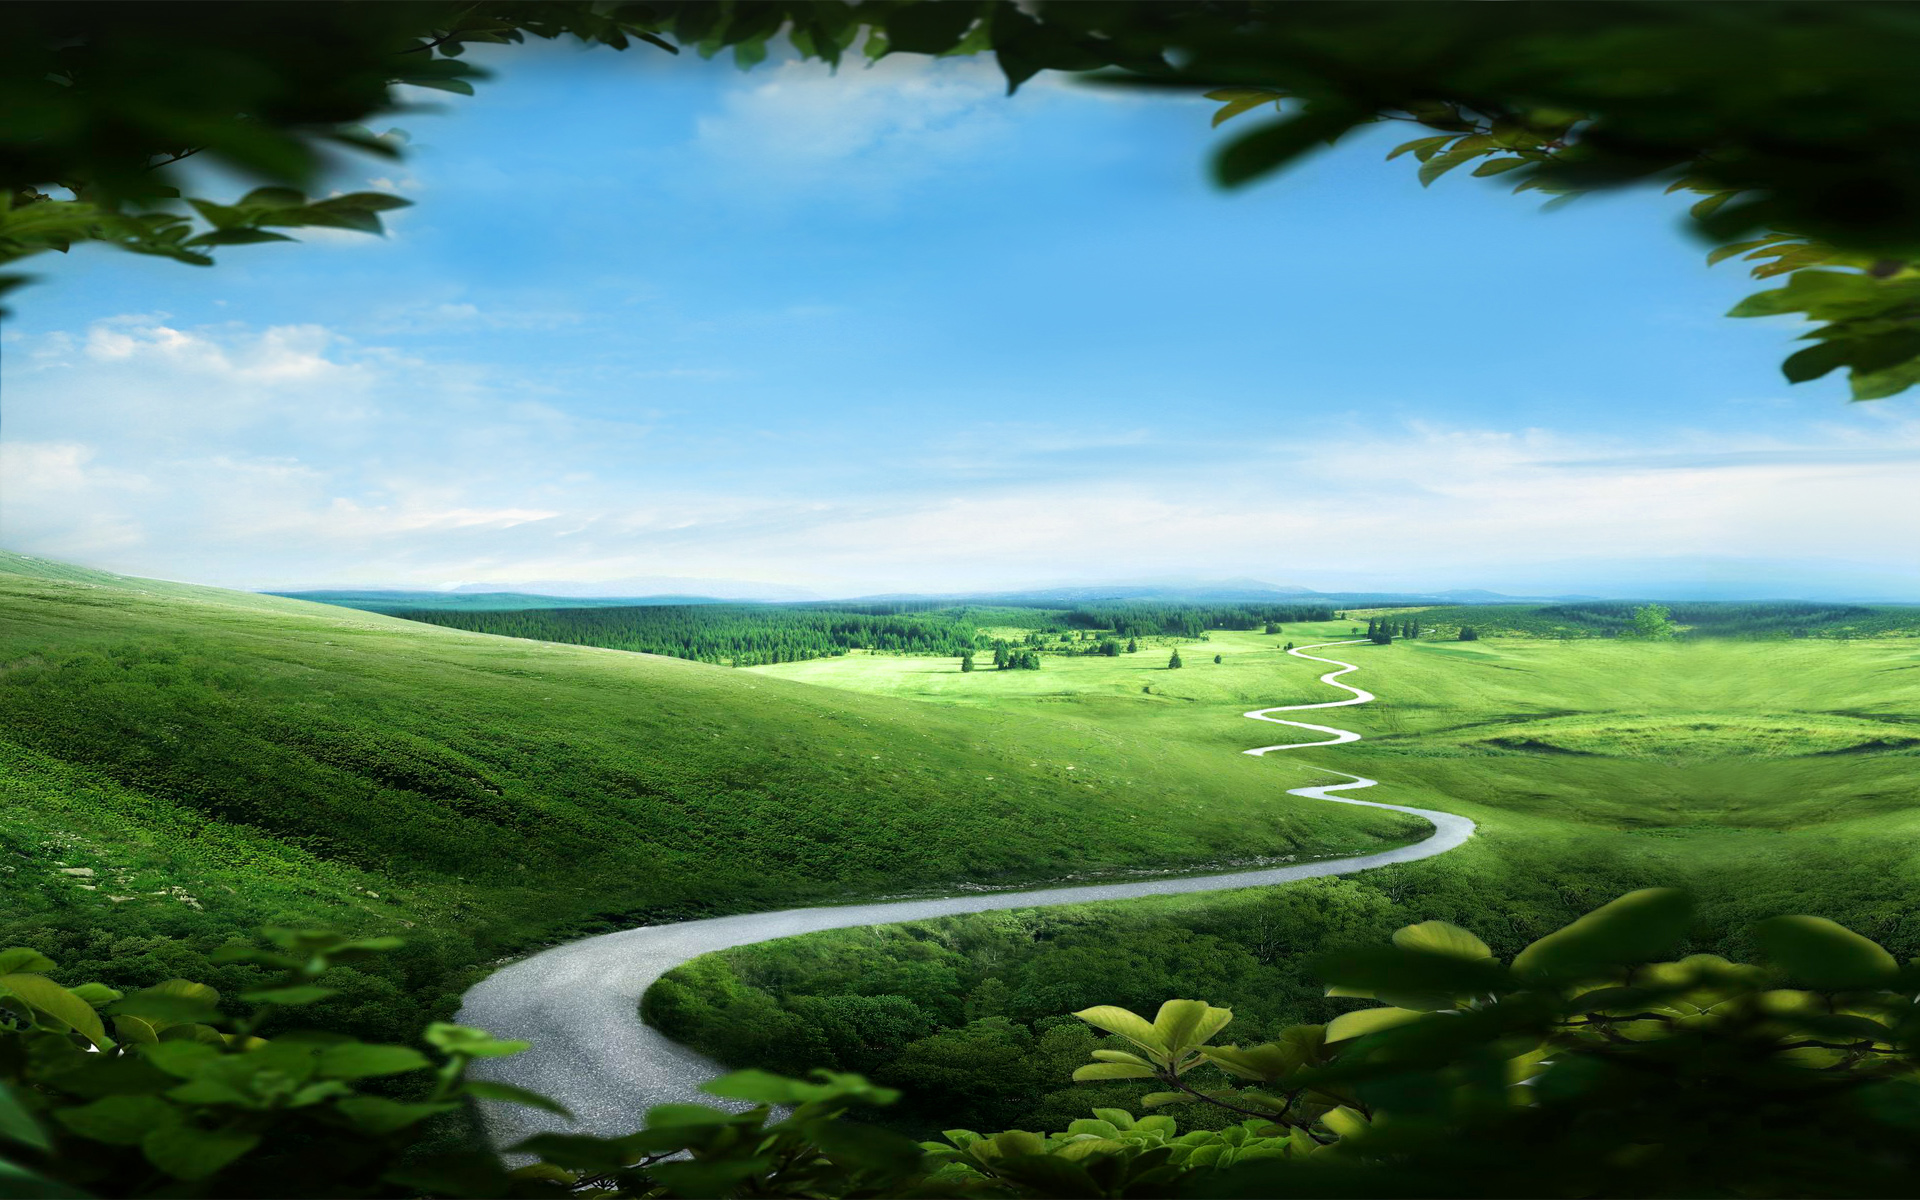 landscape scenery beautiful green landscape amazing landscape